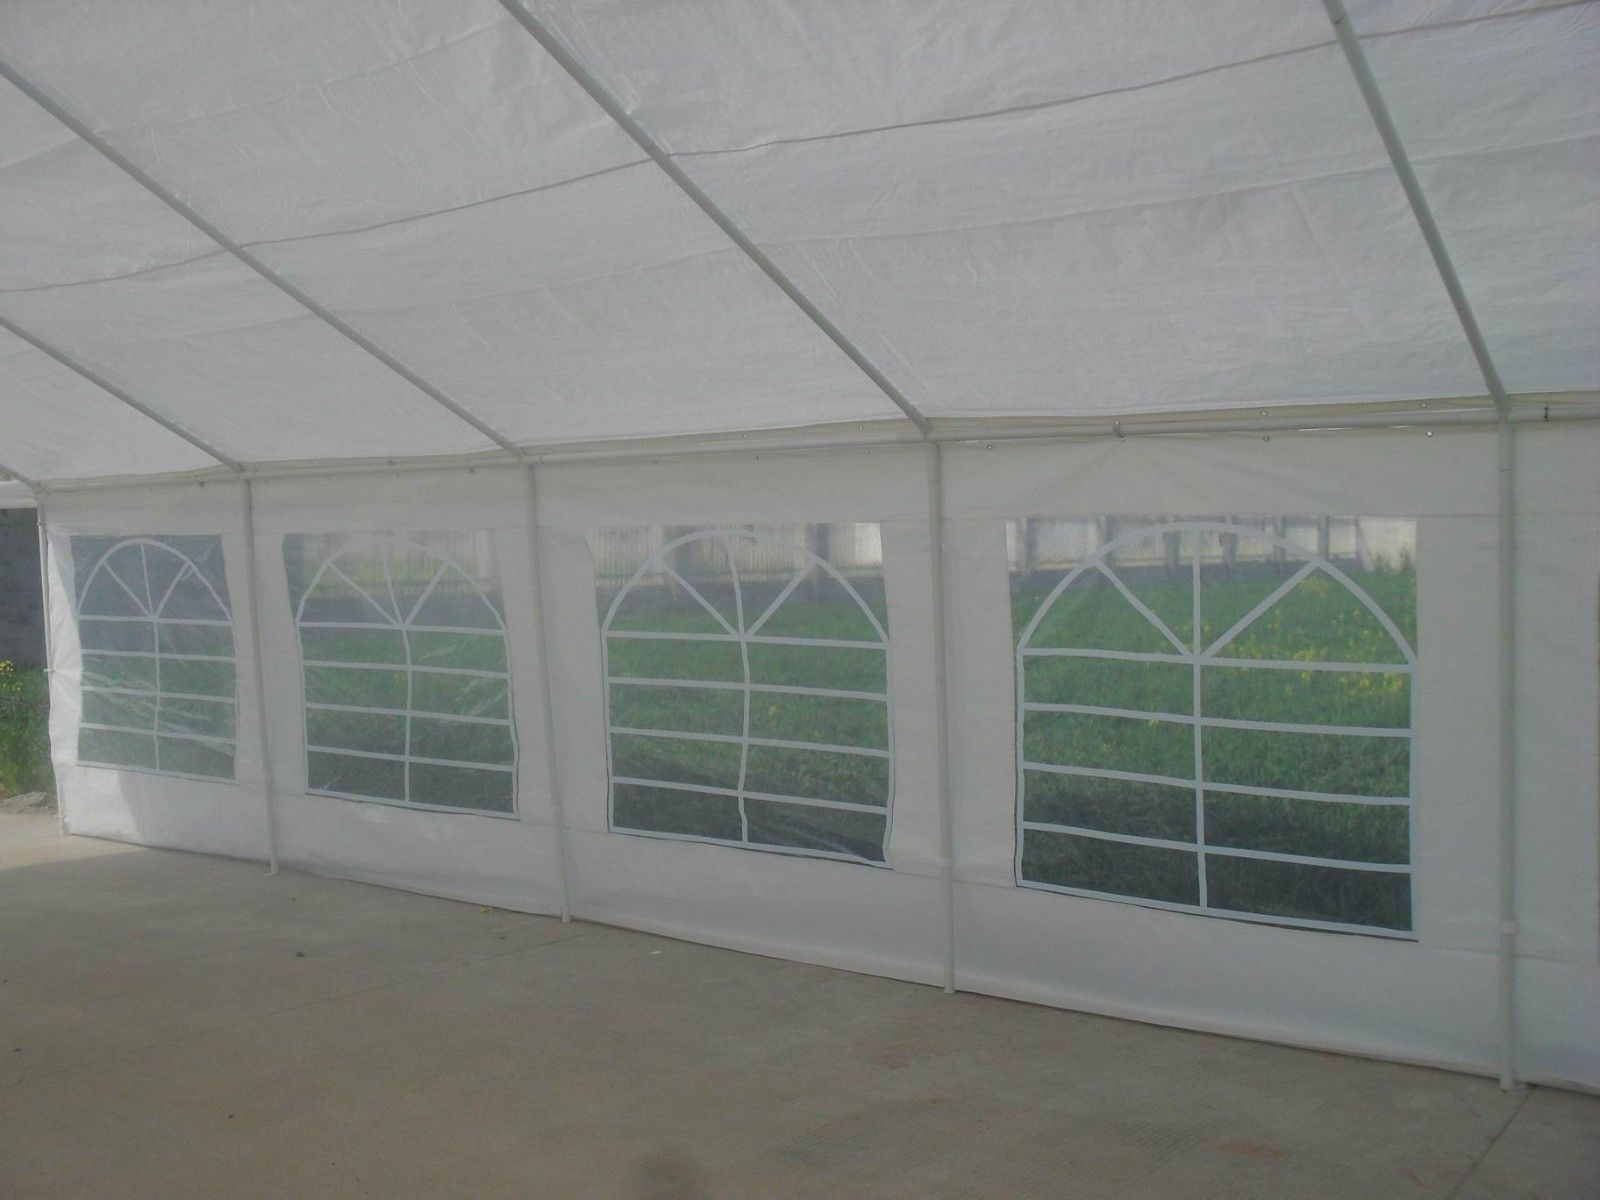 20 x 40 heavy duty white gazebo canopy tent for 20 40 window